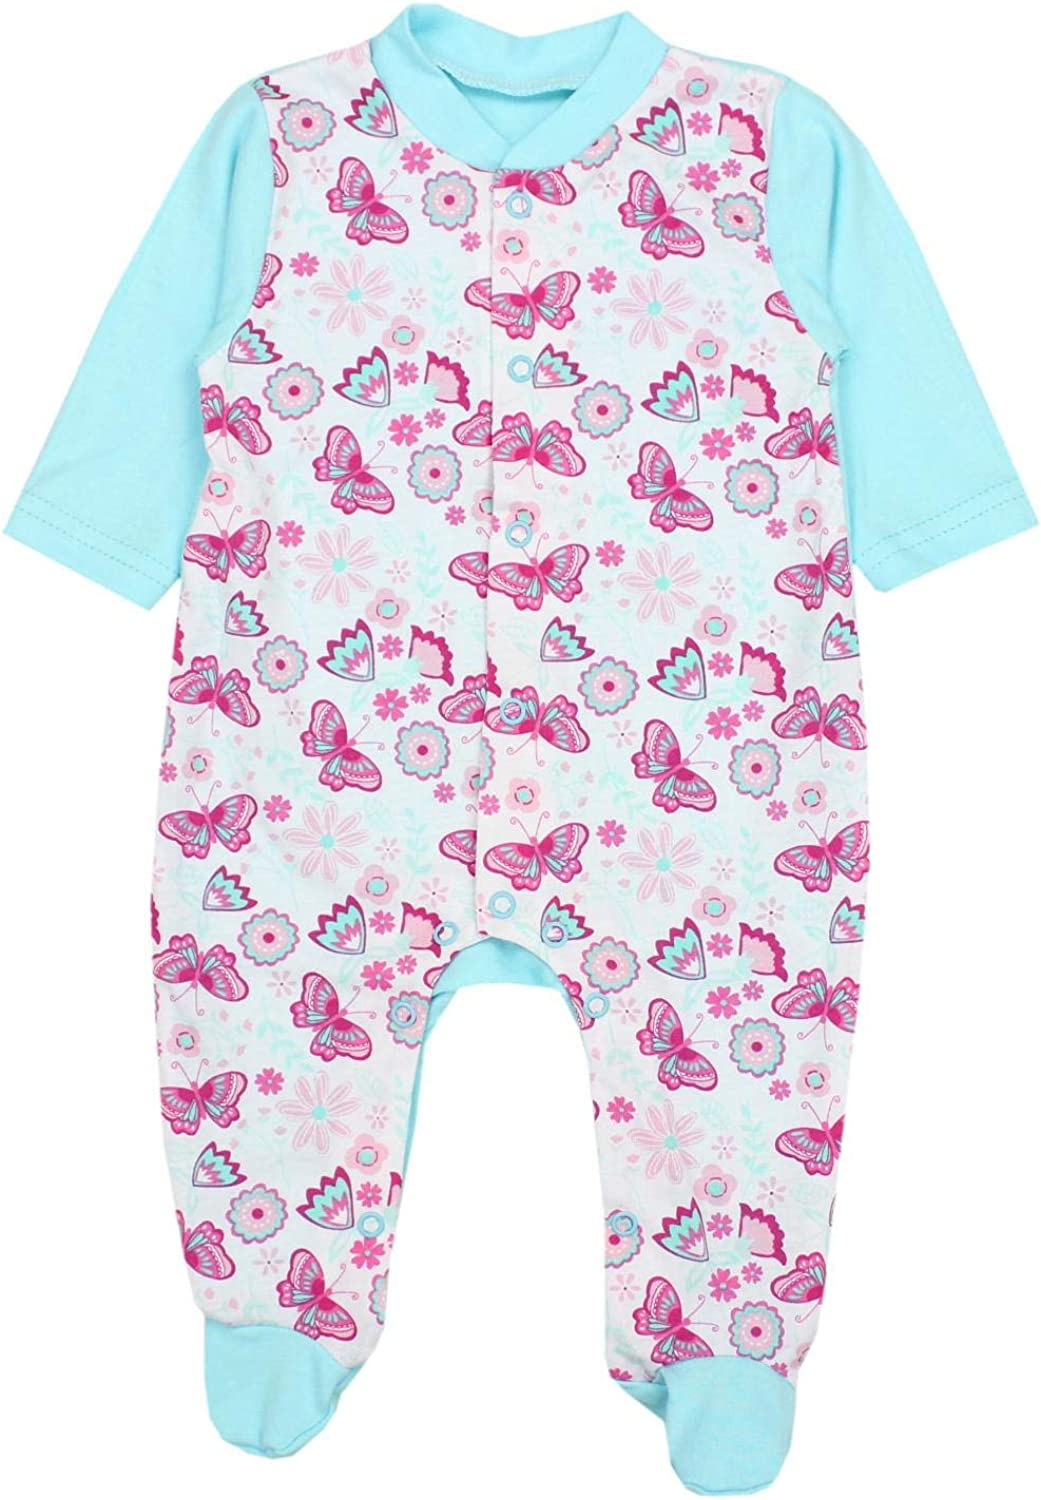 TupTam Baby Girls Sleepsuits with Feet Pack of 3